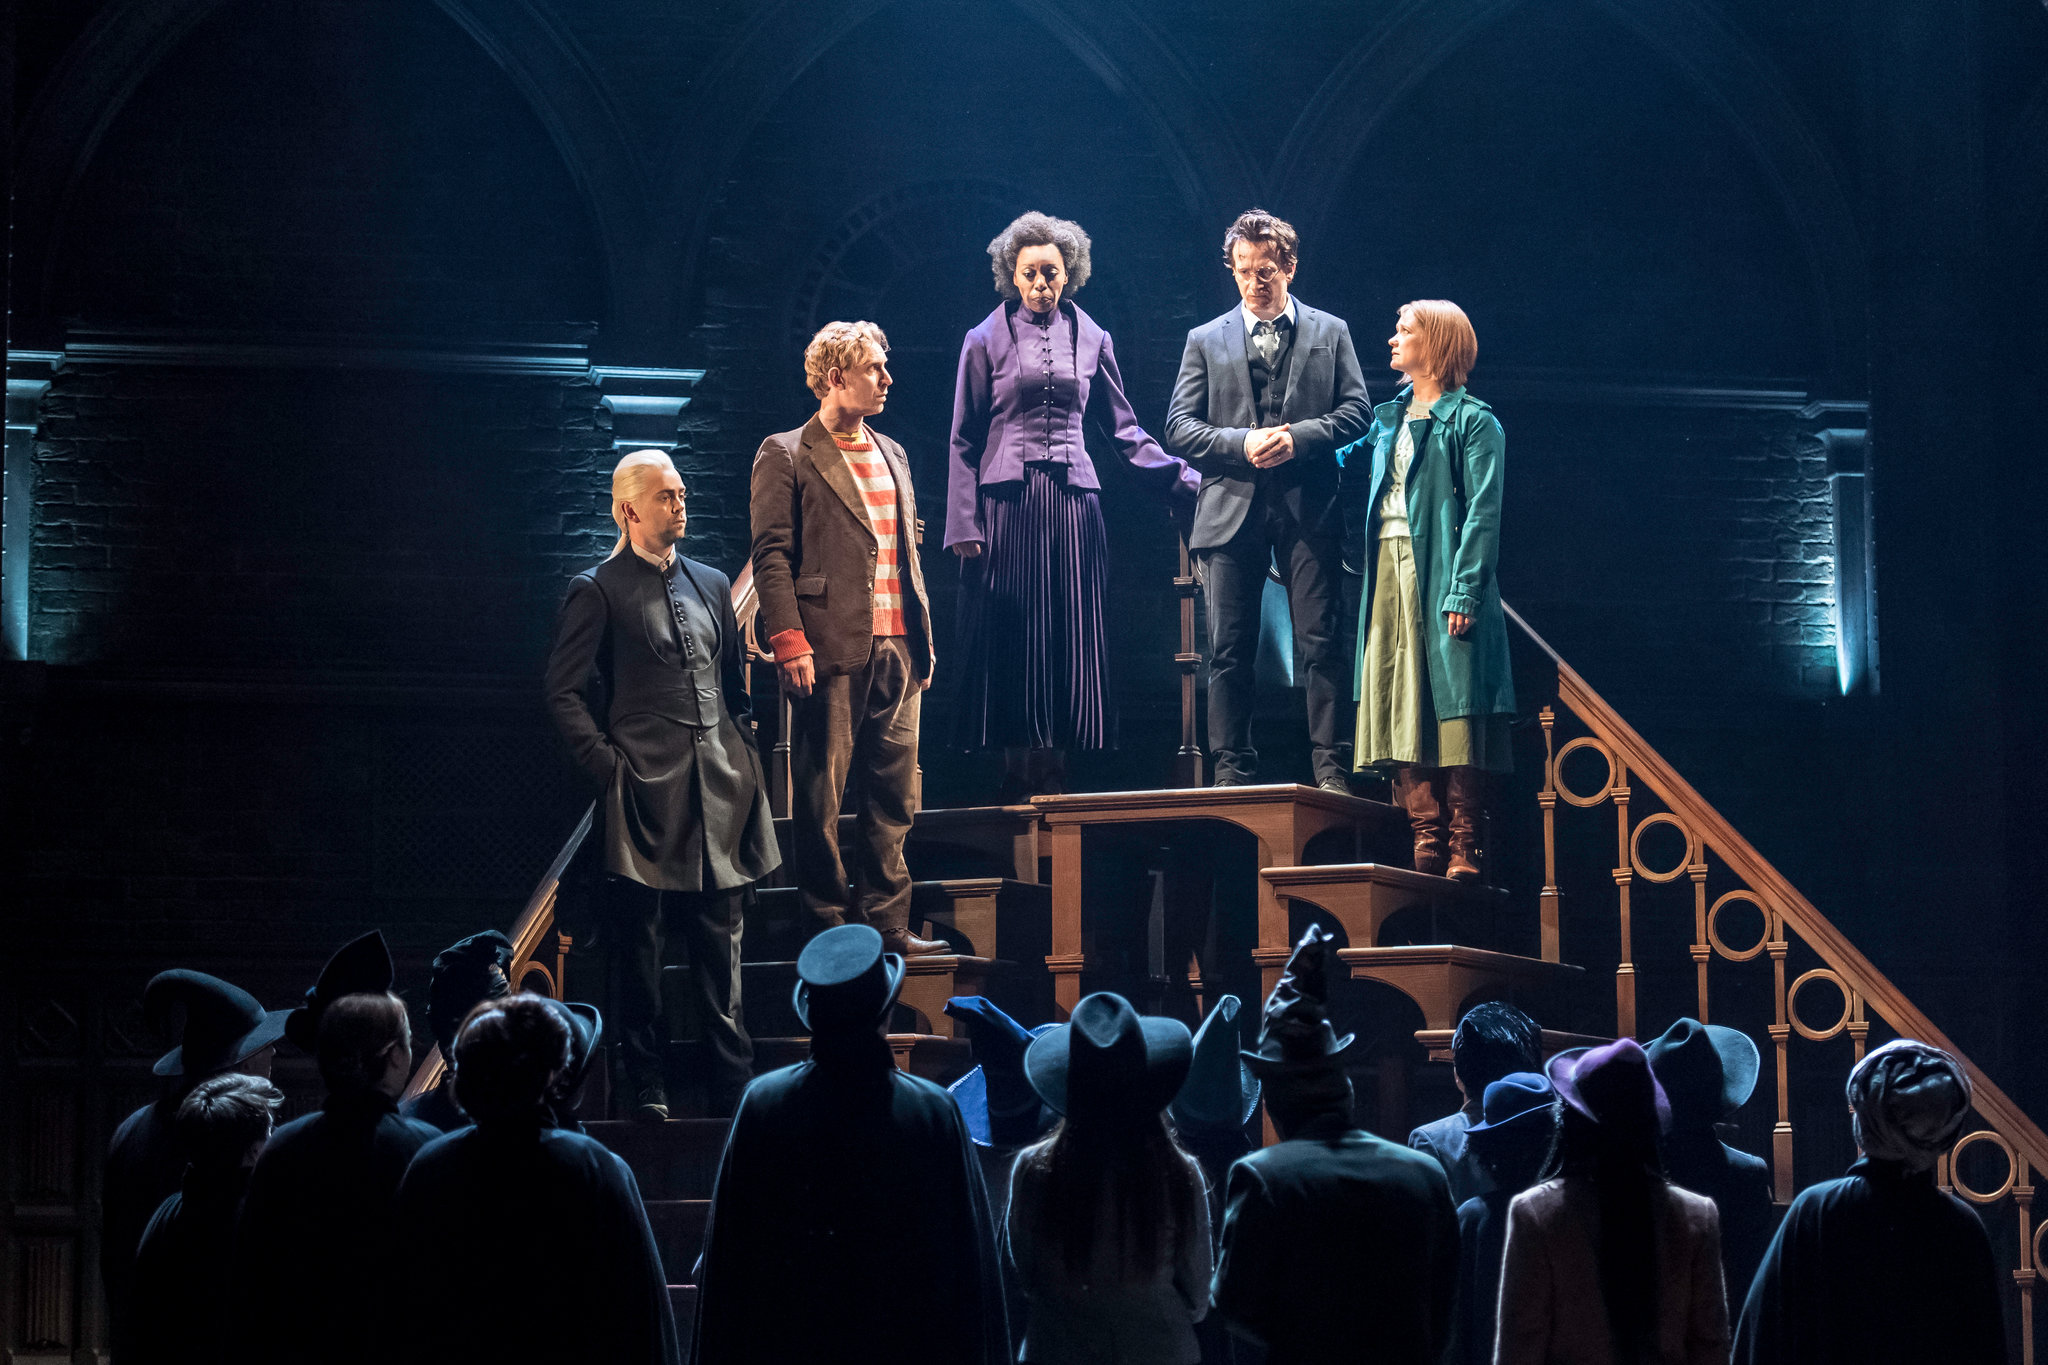 Harry Potter and The Cursed Child - Part 1 & 2 (10/22 7:30PM & 10/23 7:30PM) at Lyric Theatre